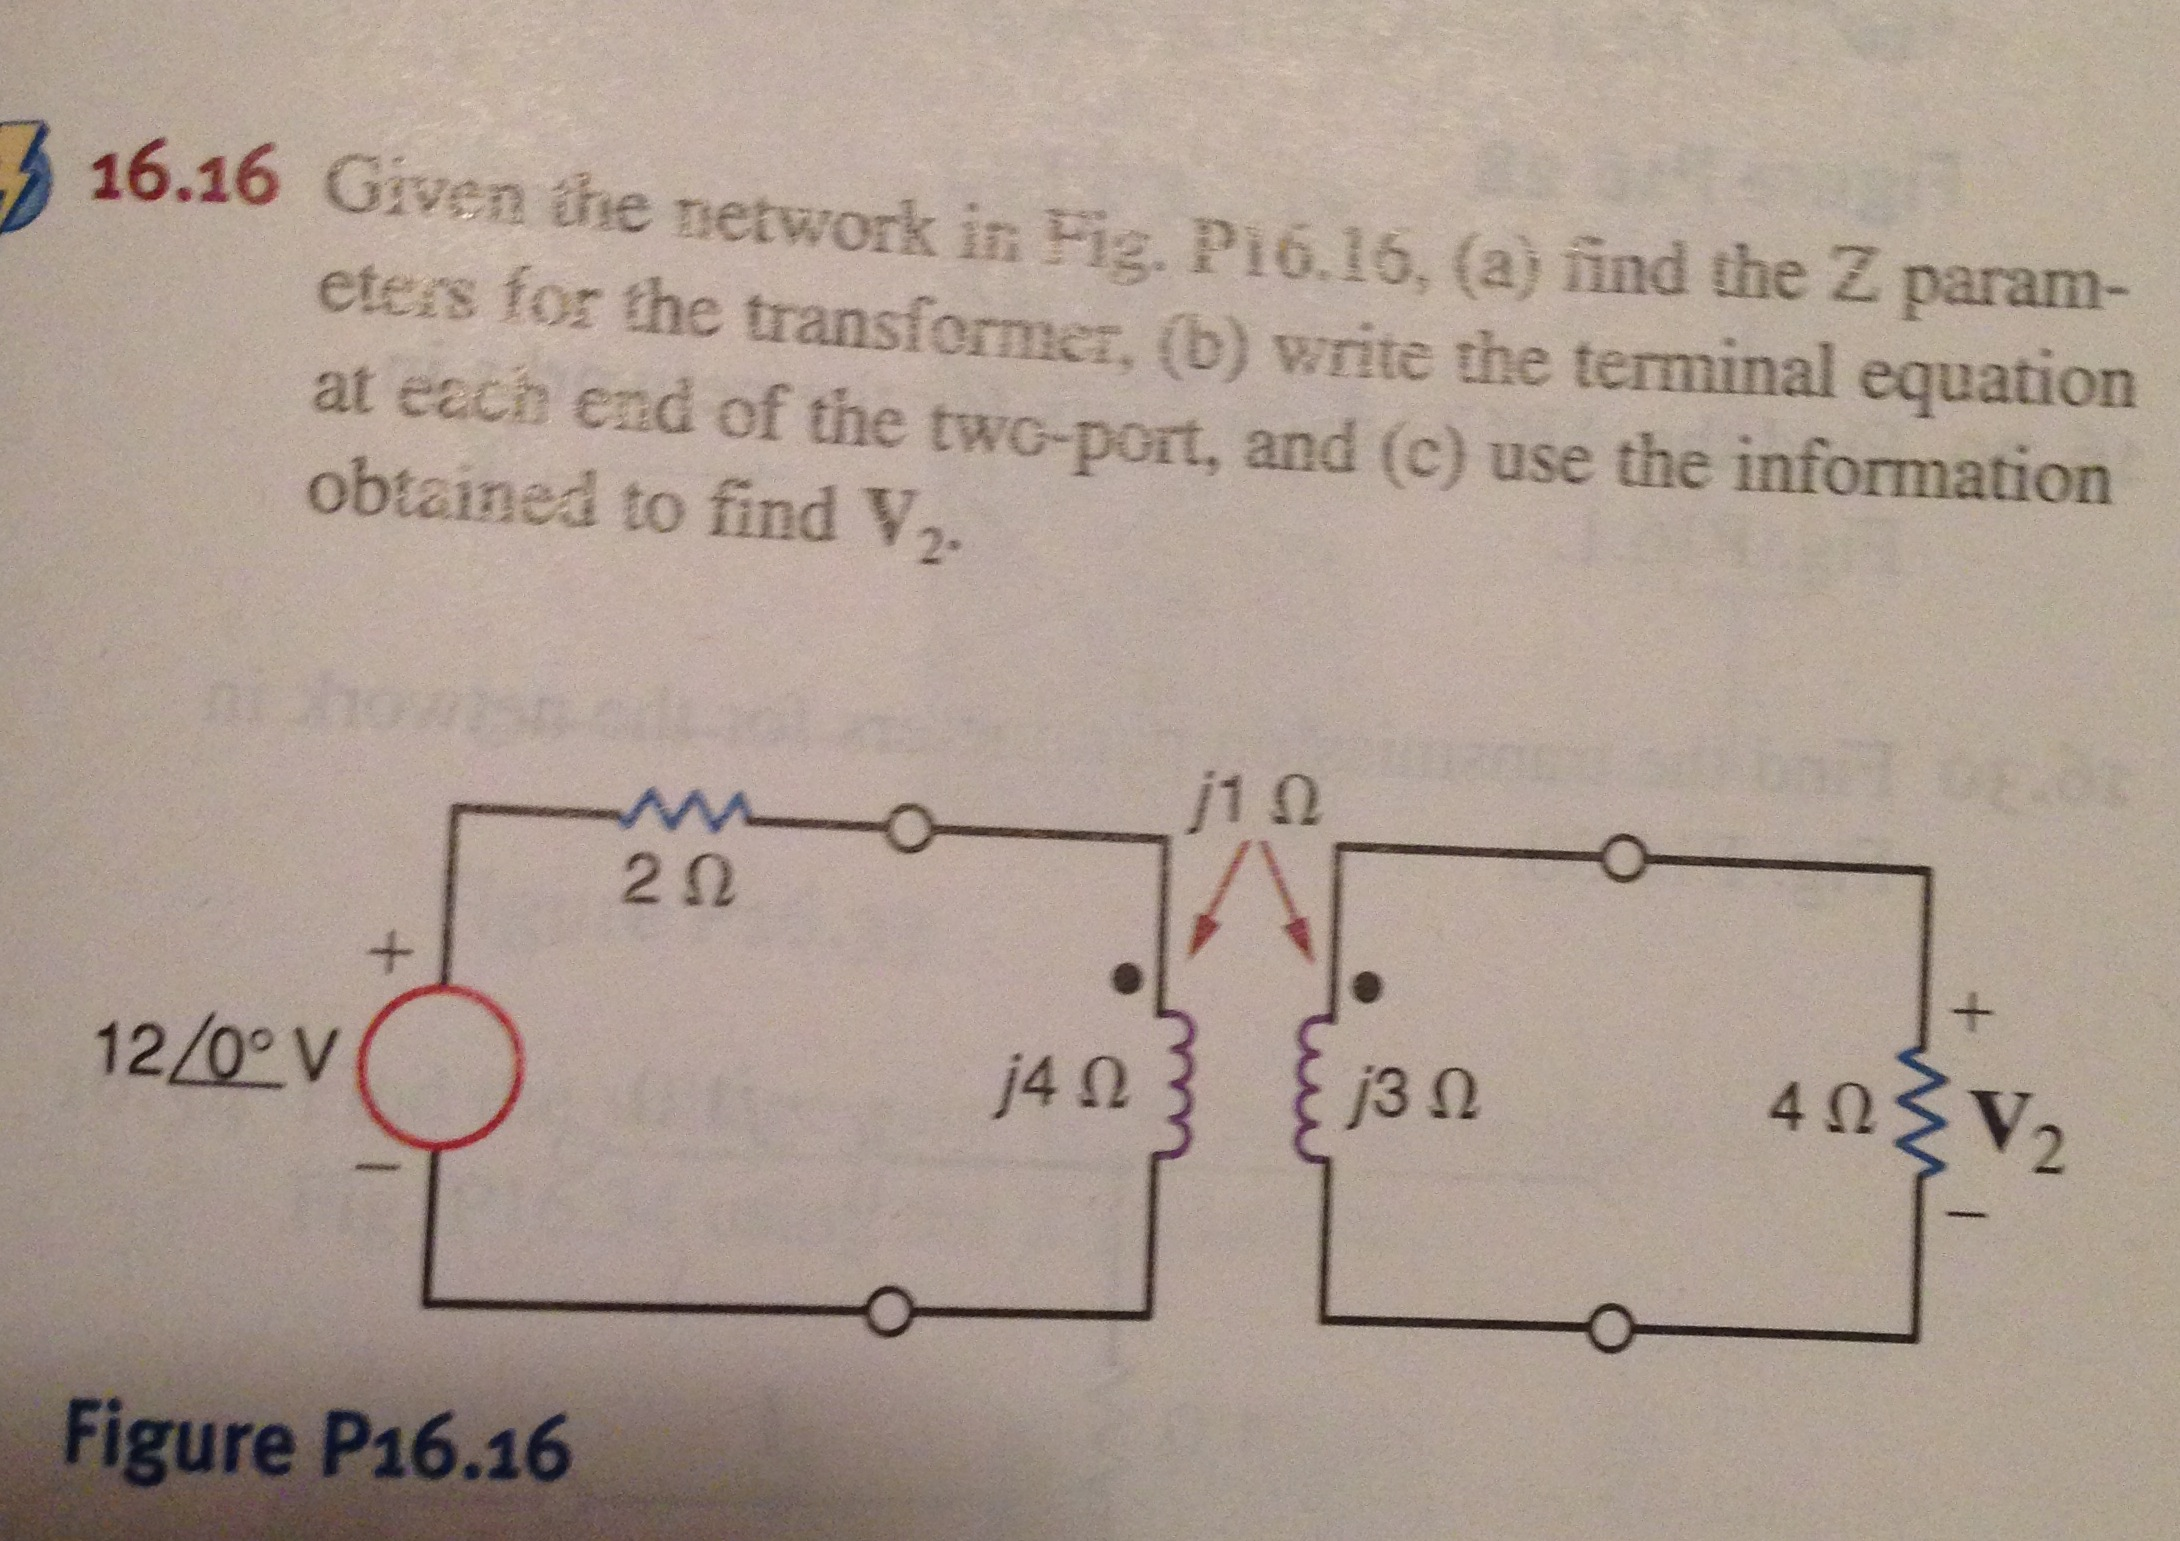 Given the network in Fig P16.16, (a) find the Z pa